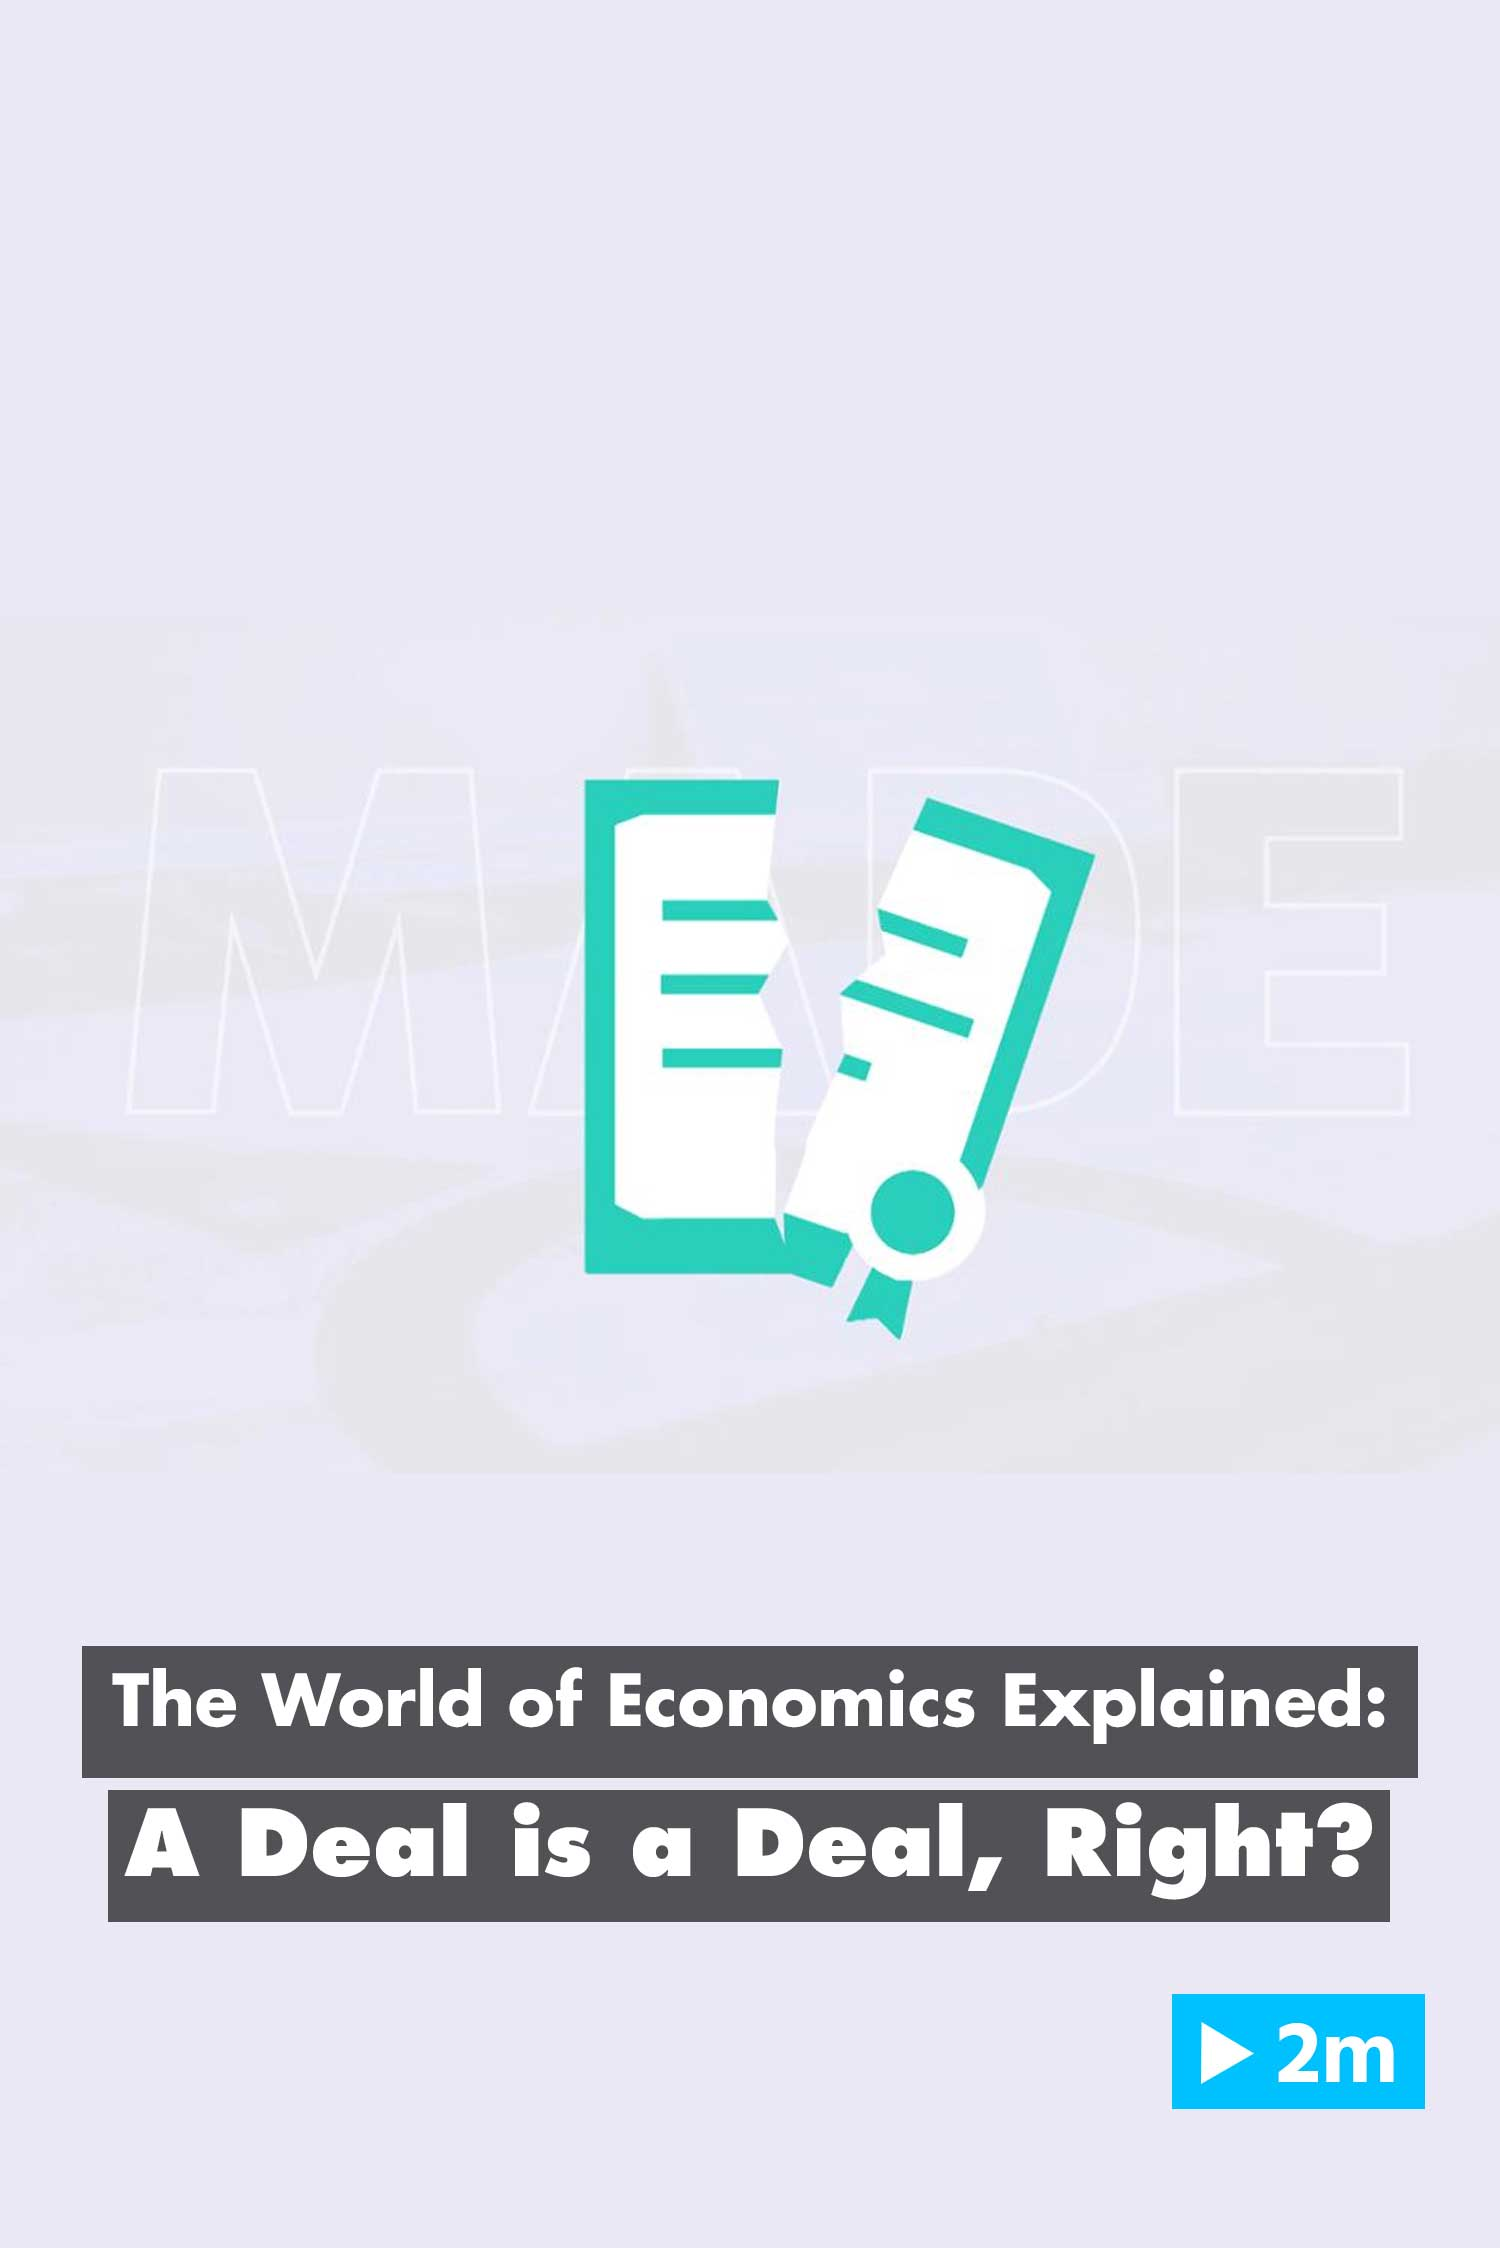 The World of Economics Explained: A deal is a deal right?